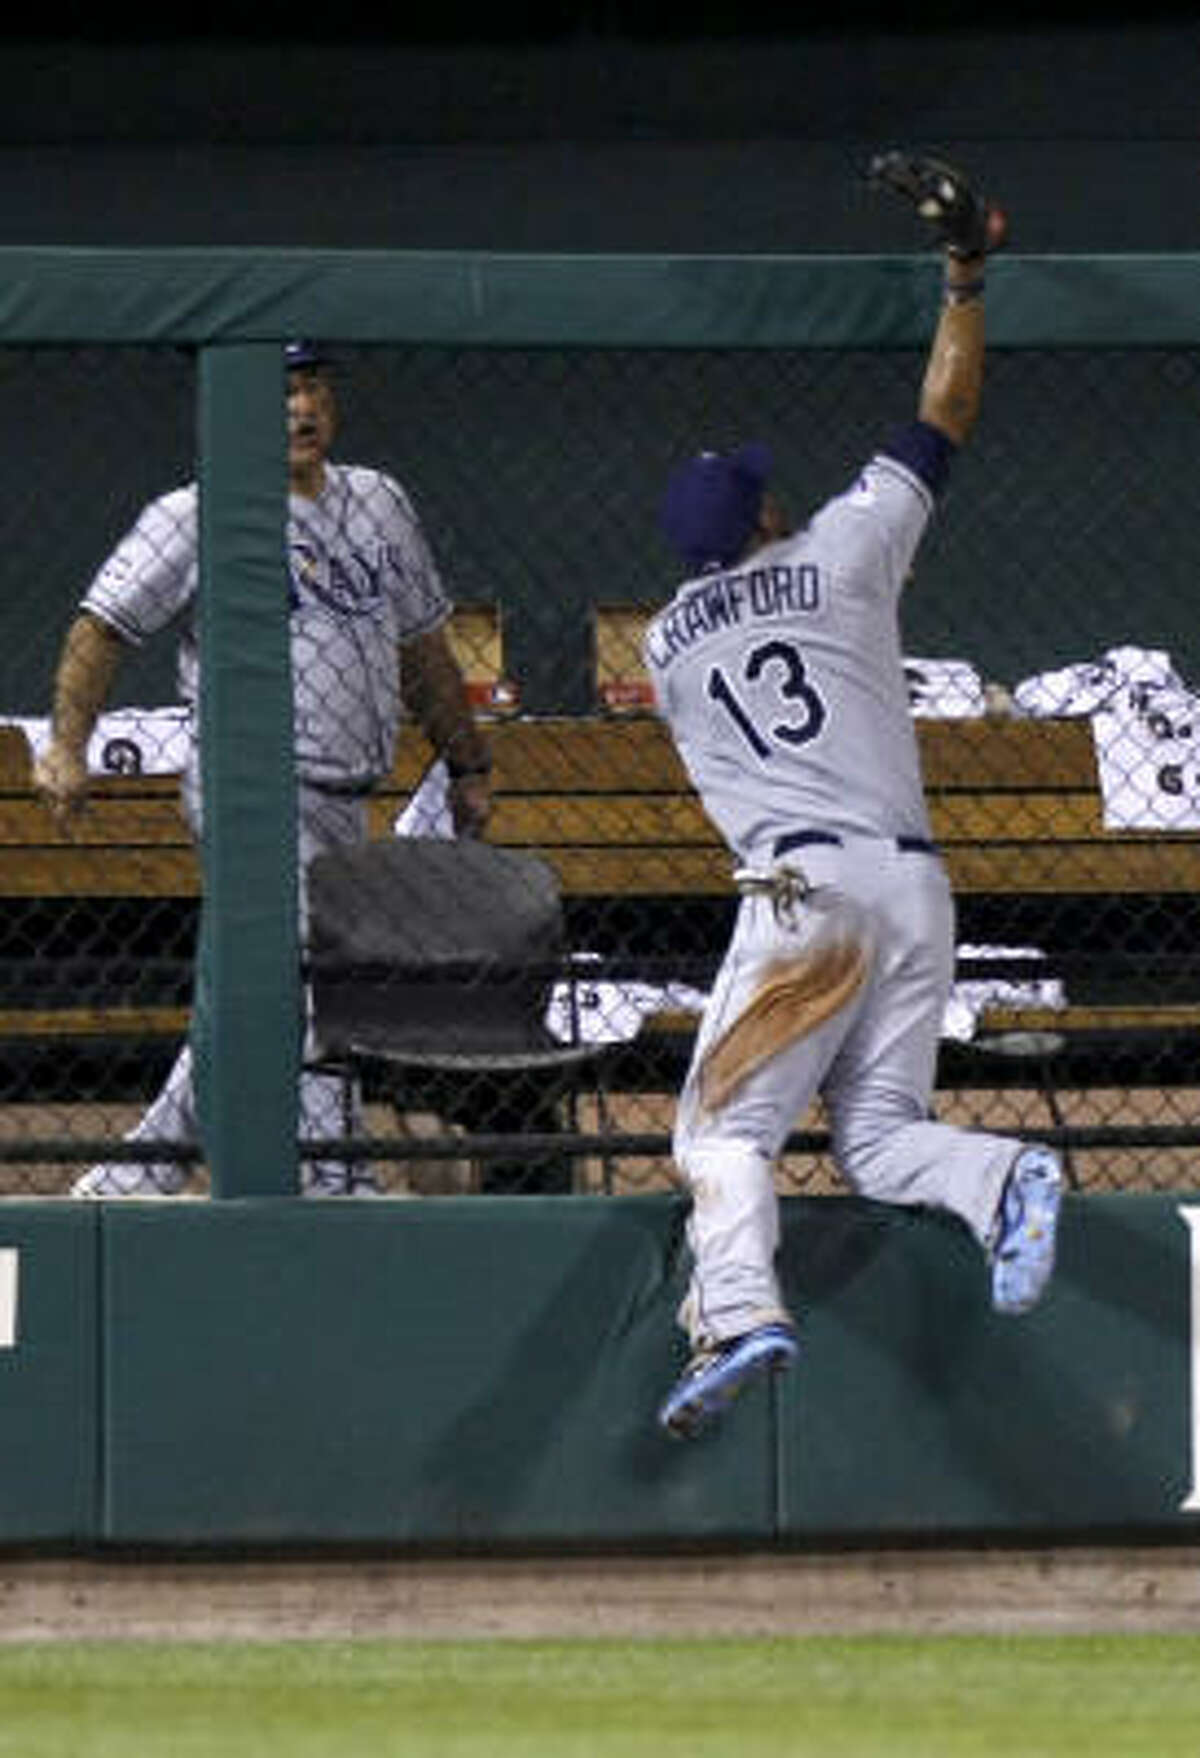 Here's another view of the catch. In his third All-Star appearance, Carl Crawford was elected by his fellow players as a reserve. He came off the bench as a pinch hitter in the fifth and singled his first time up before finishing 1-for-3.